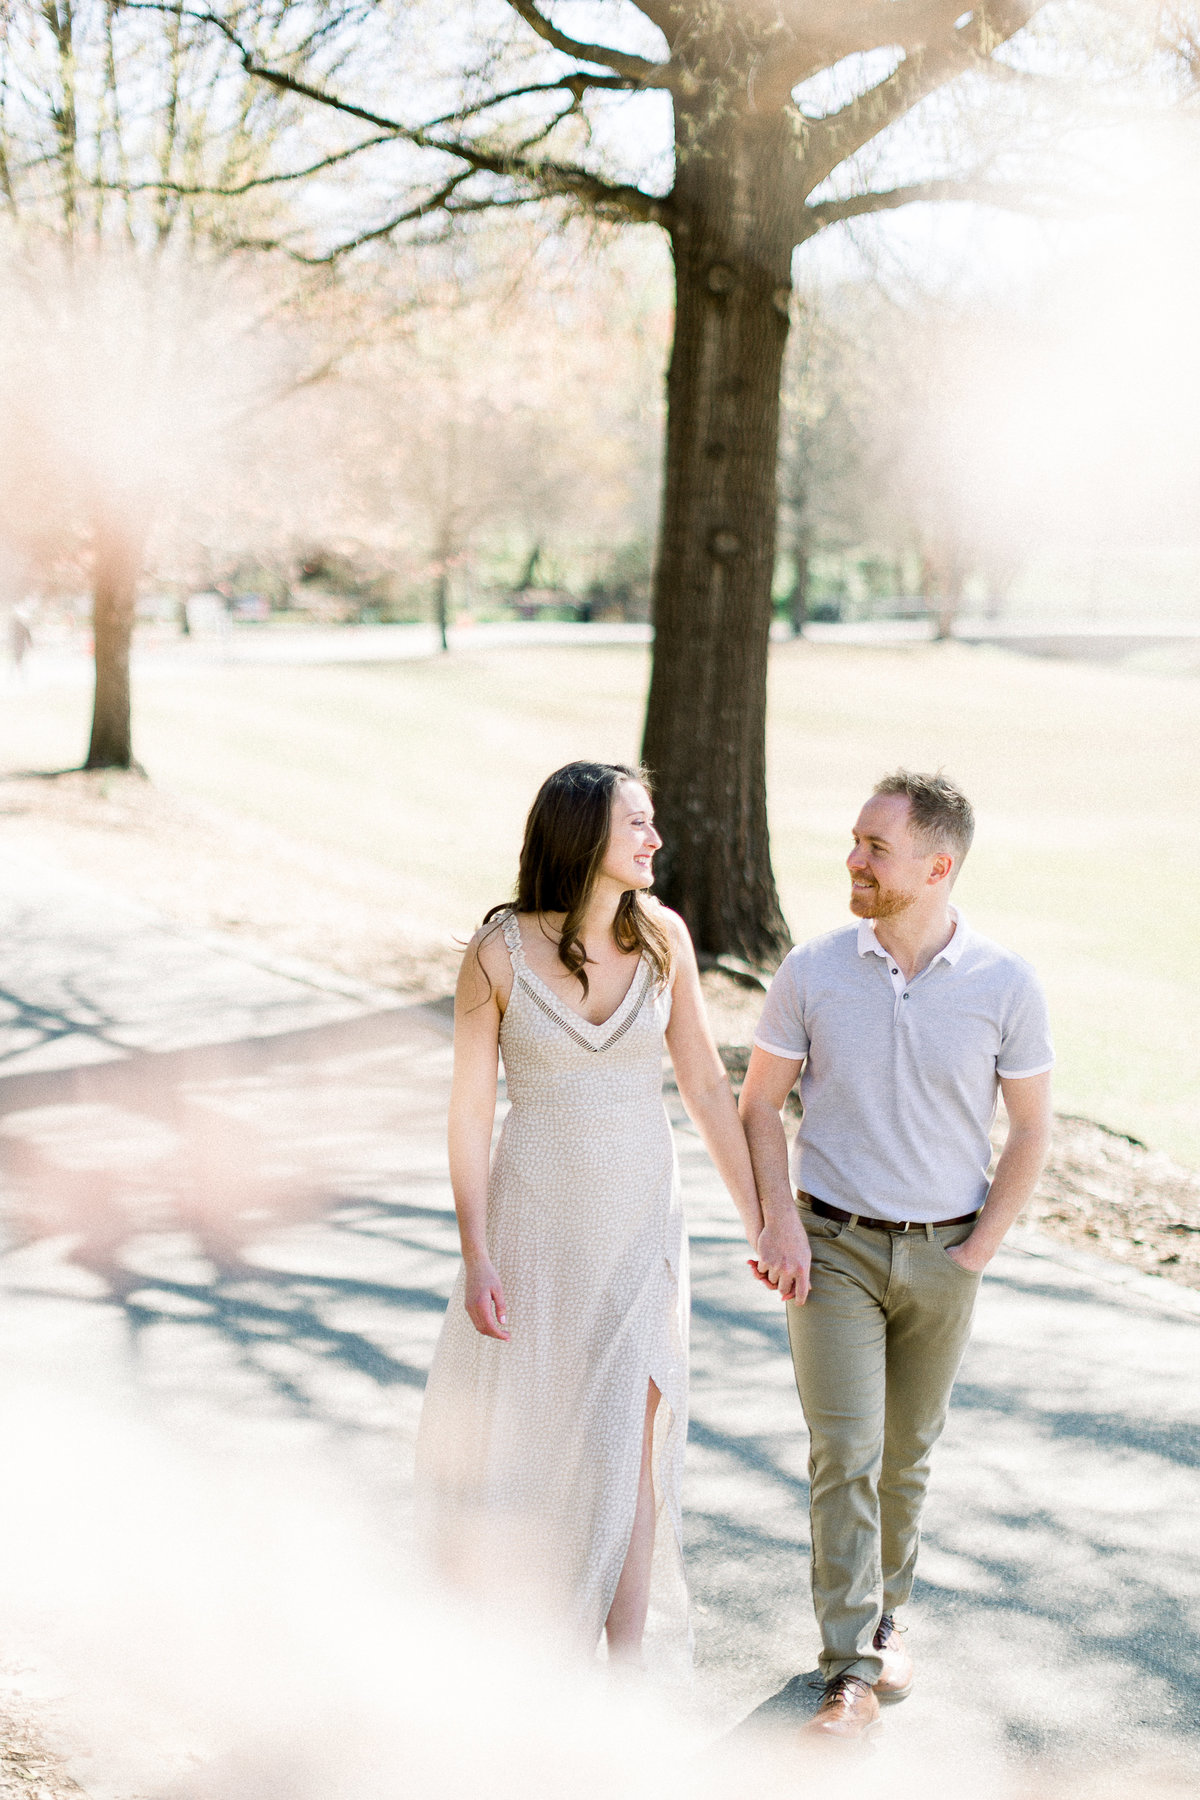 Lizzie Baker Photo _ Atlanta Engagement Photographer _ Atlanta Wedding Photographer _ Biltmore Wedding Photographer _ Foxhall Wedding Photographer _ Yew Dell Wedding23